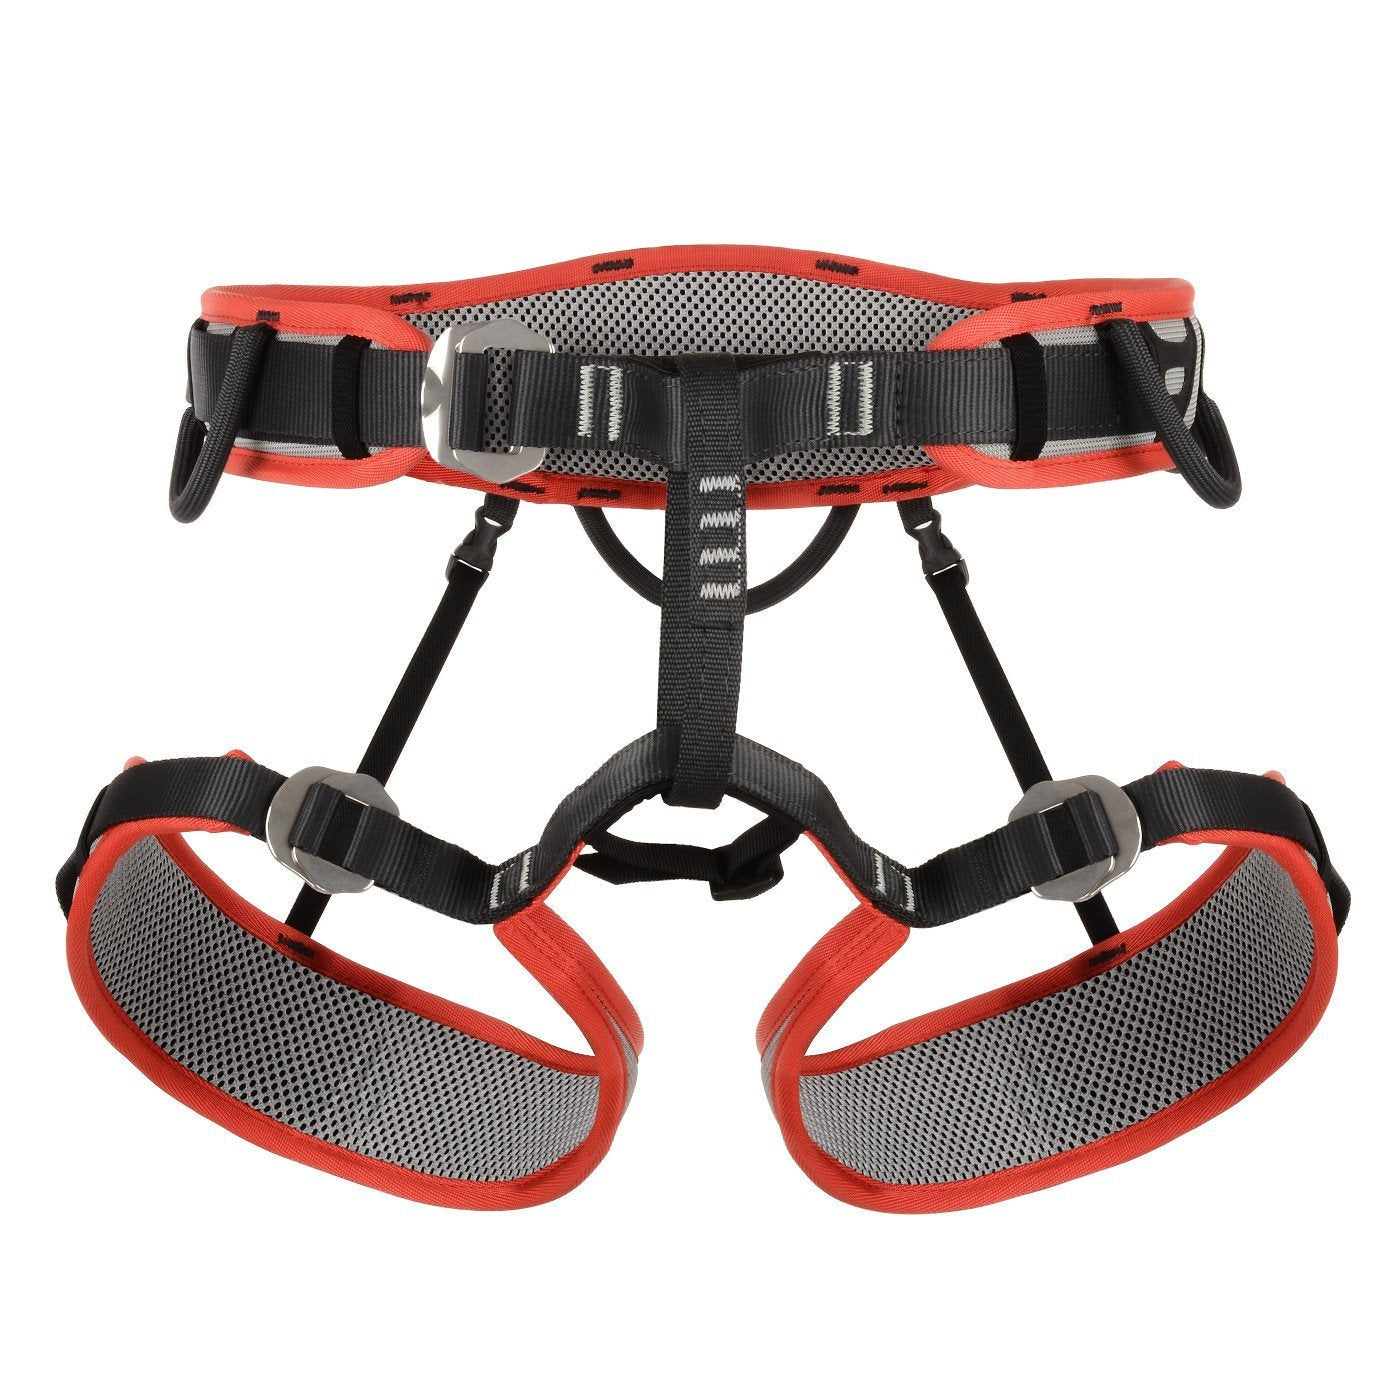 DMM Renegade 2 Harness in black, grey and orange colours